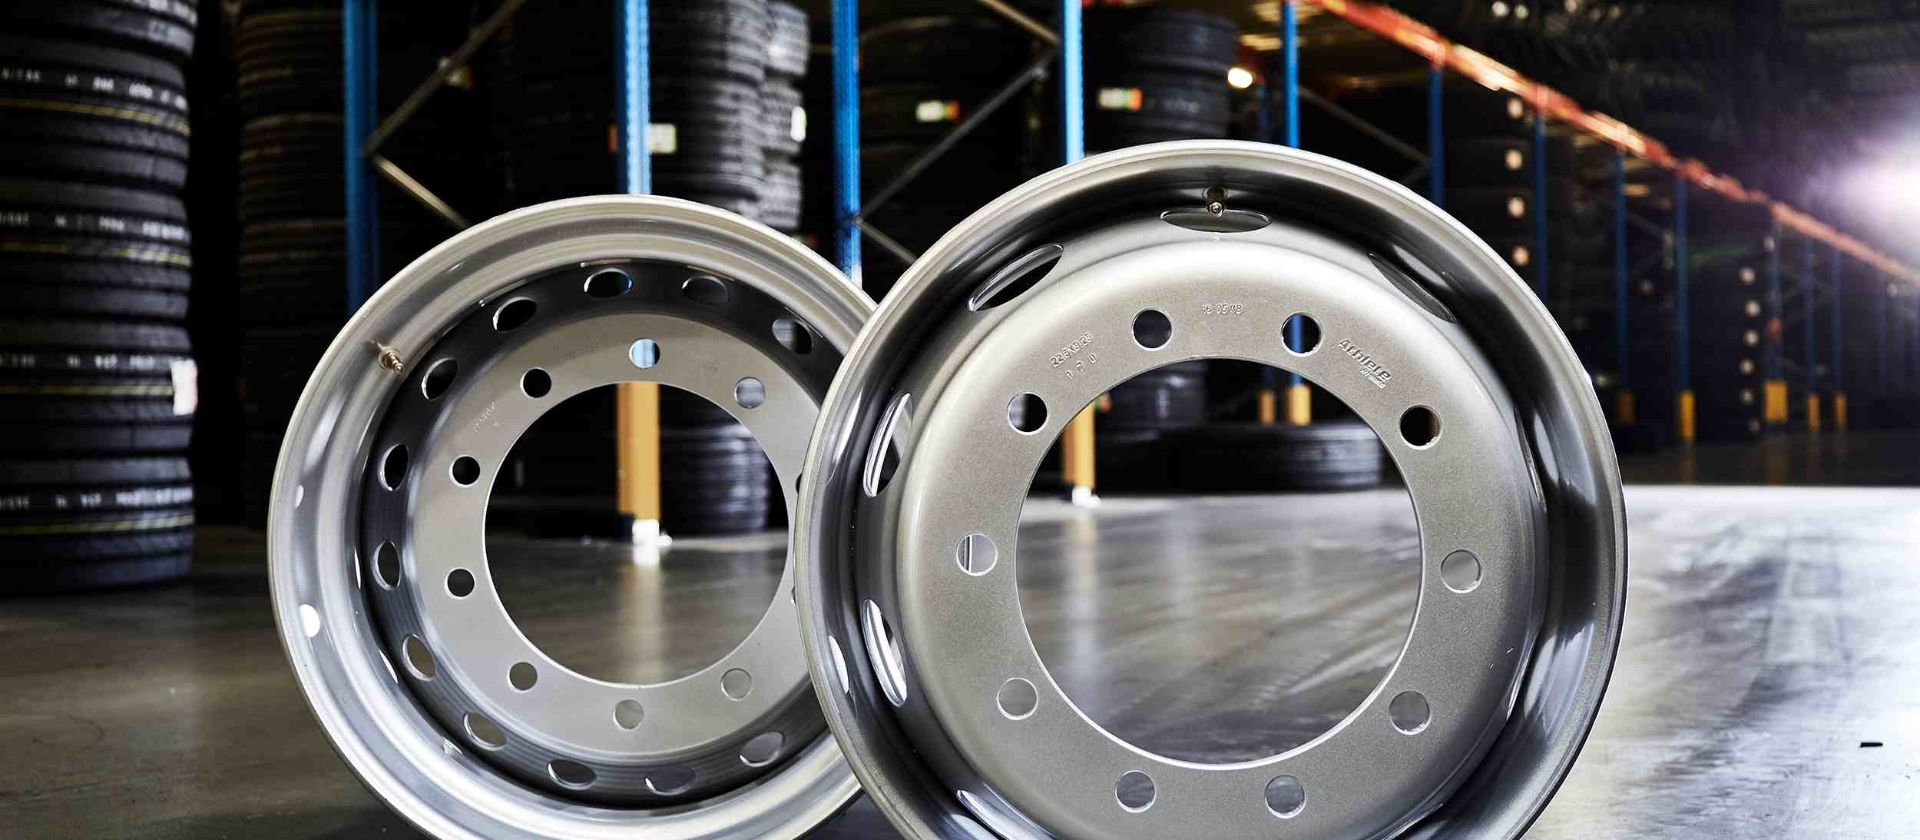 Anti-dumping levy confirmed on metal wheels from China